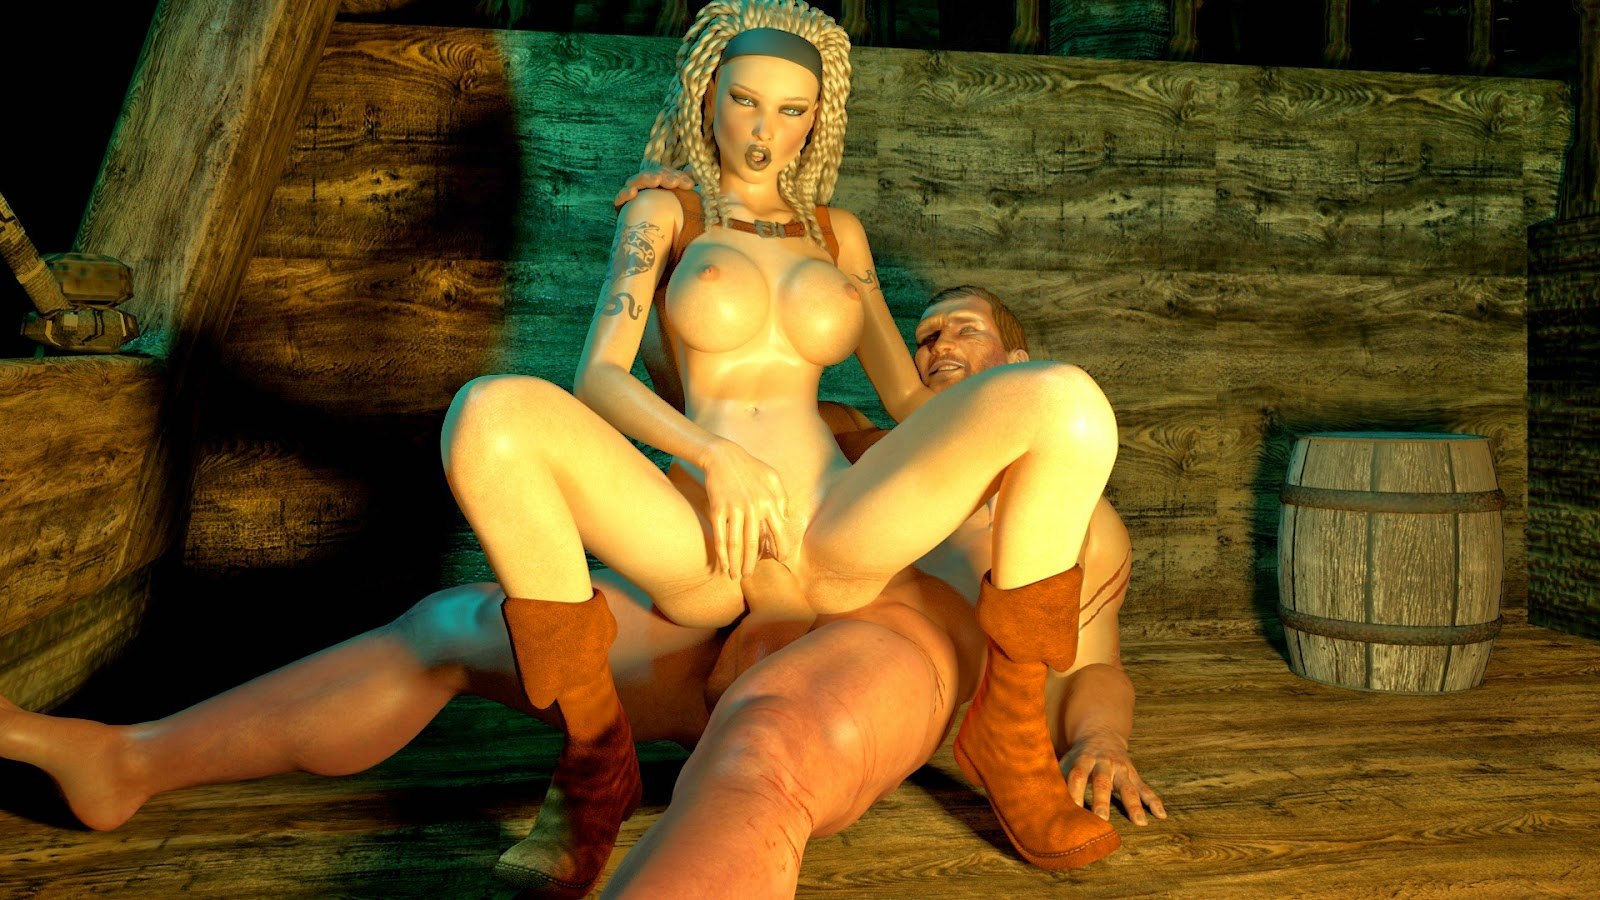 Adult game xxx rpg xxx image